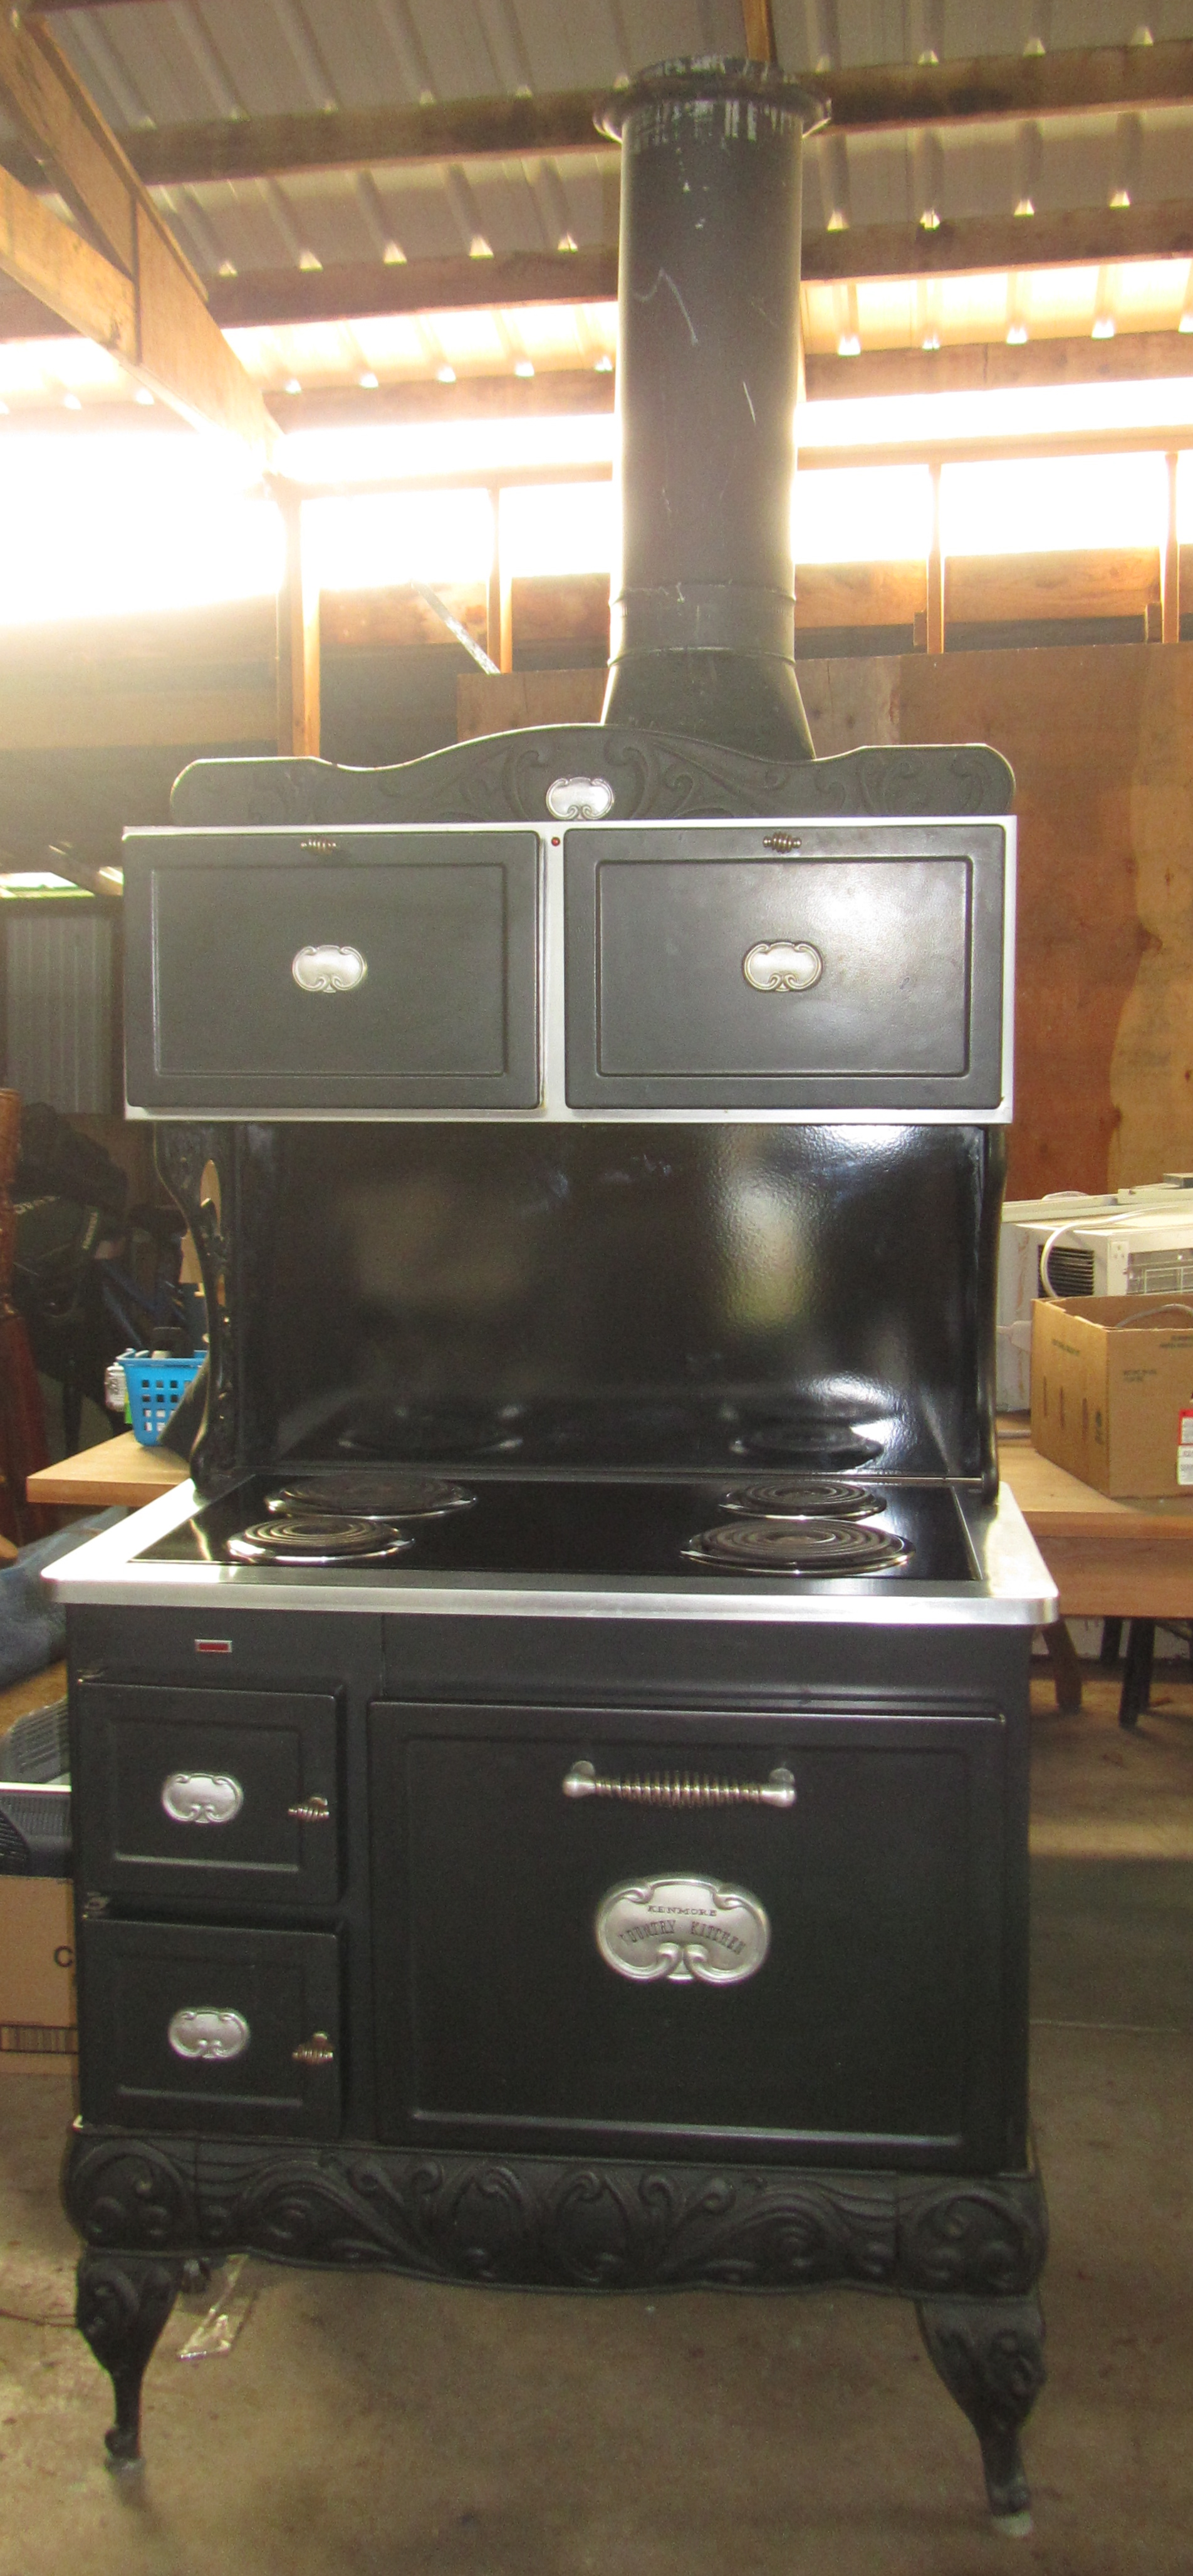 Sears Country Kitchen Electric Range